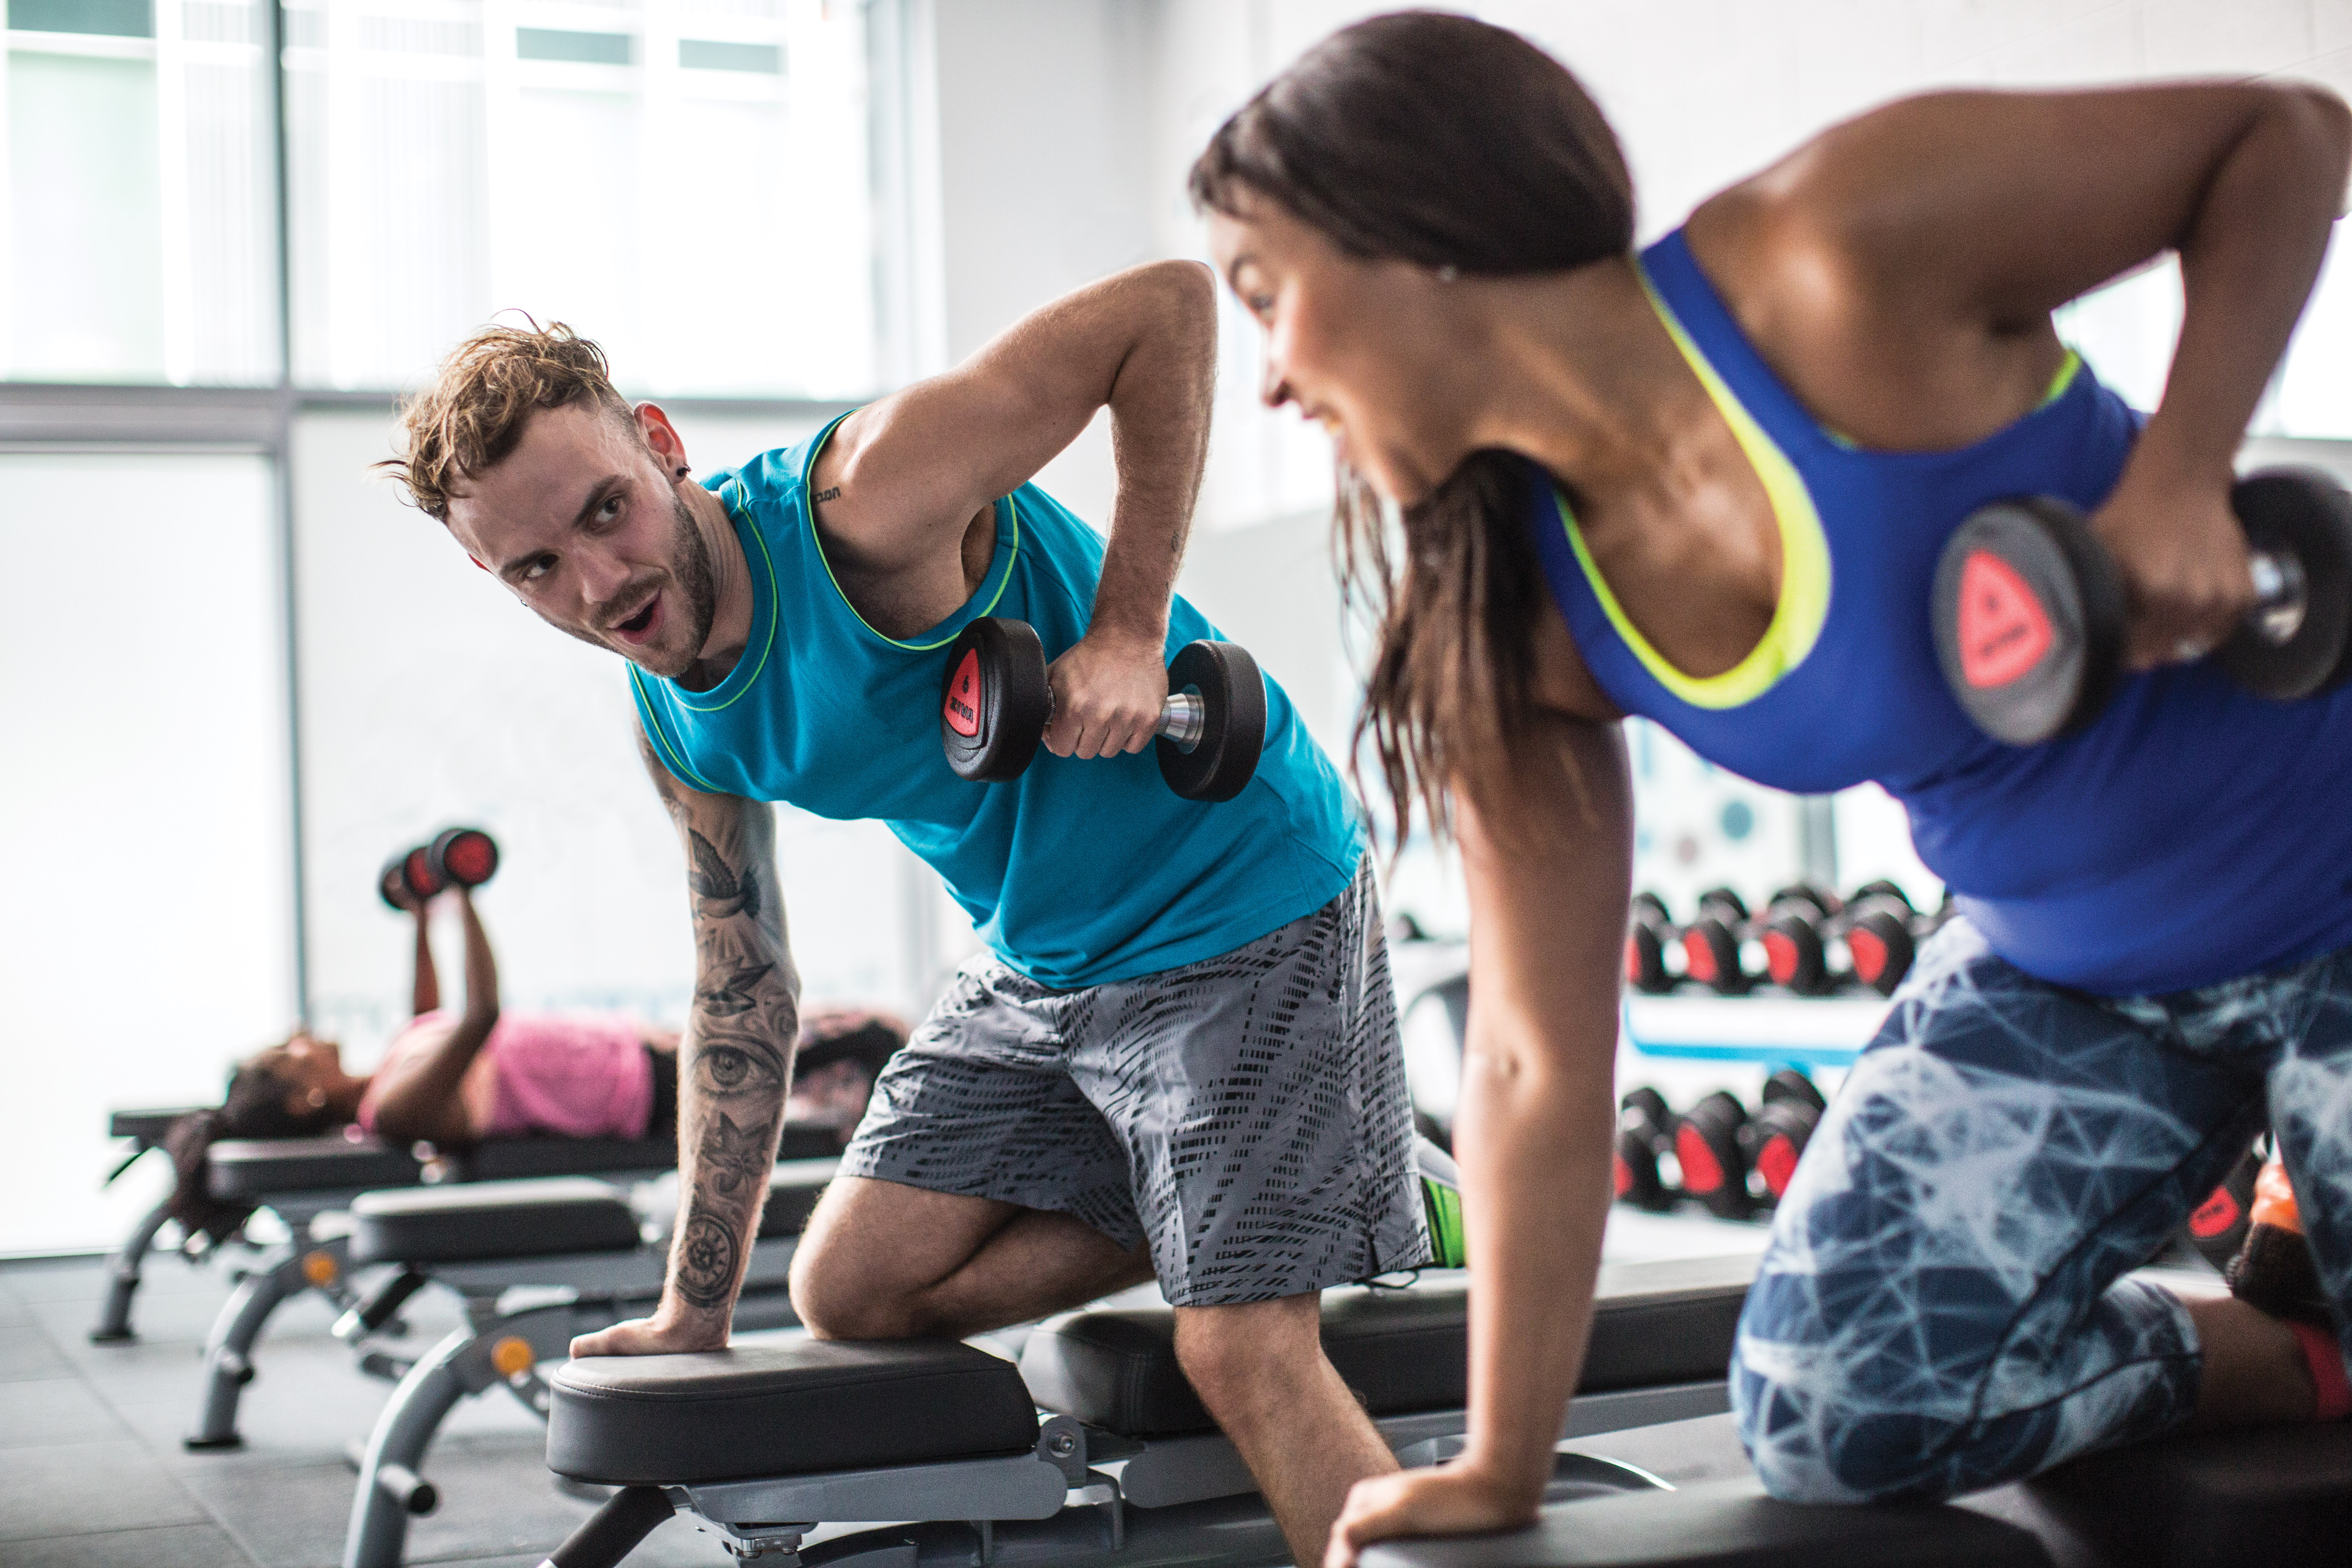 gym training personal lifetime academy launches partners open 26th march abigail health